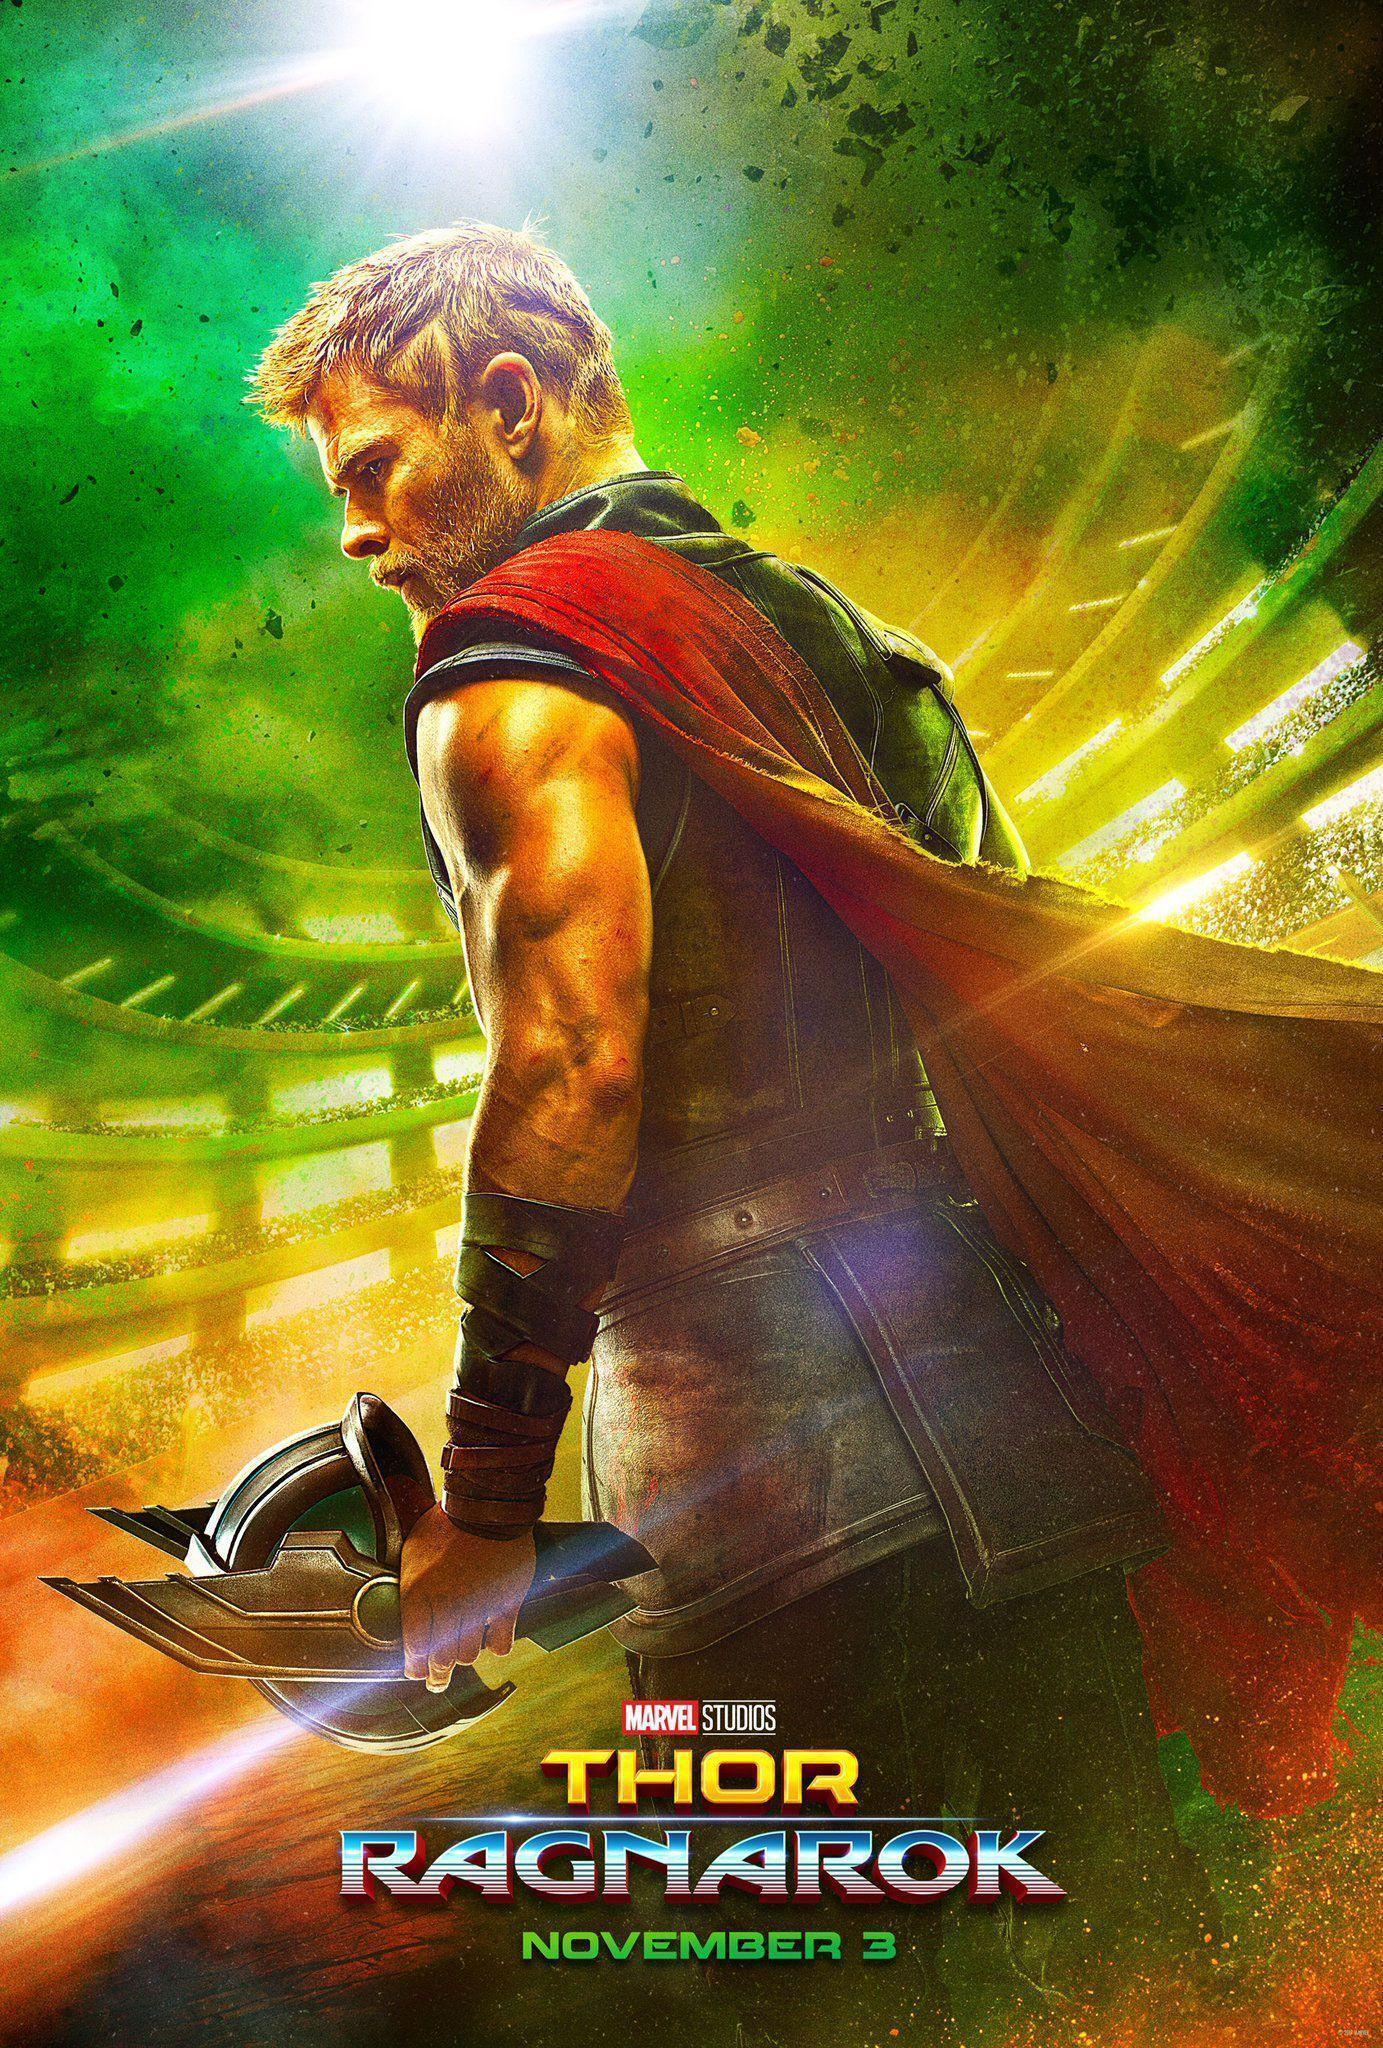 All Movie Posters and Prints for Thor: Ragnarok | JoBlo Posters